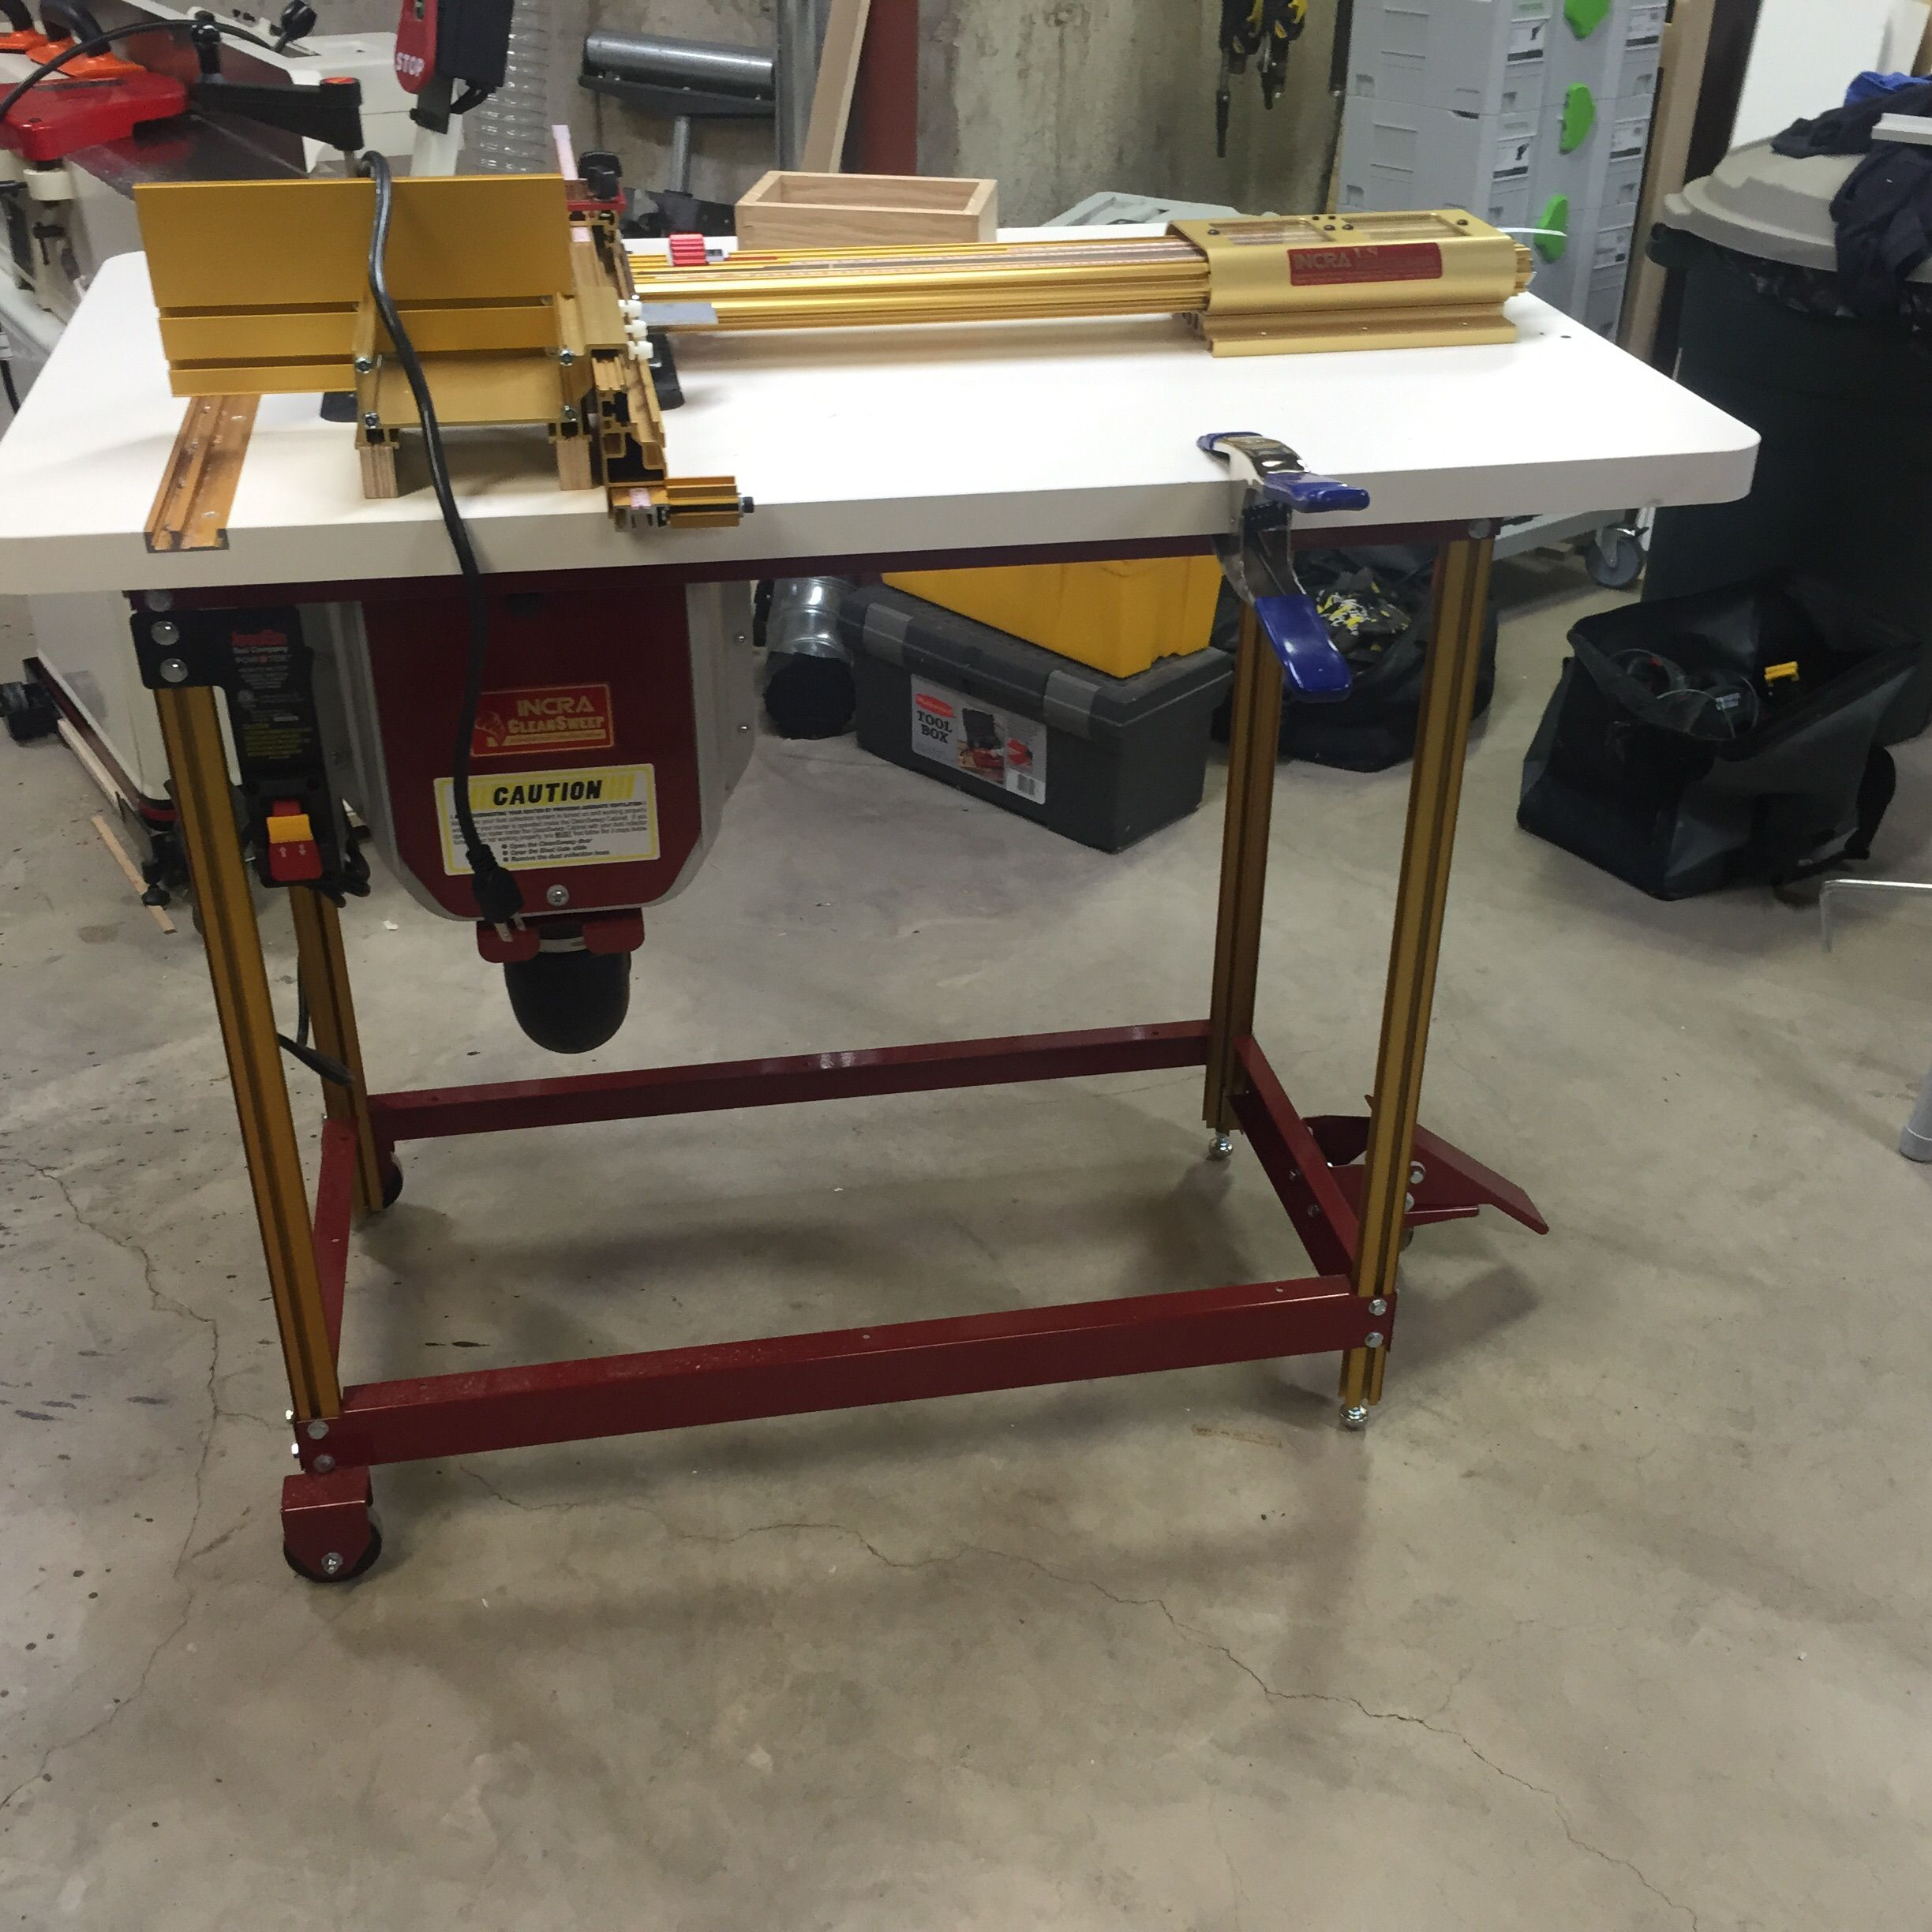 Image result for using incra table saw fence for dedicated router image result for using incra table saw fence for dedicated router table keyboard keysfo Image collections